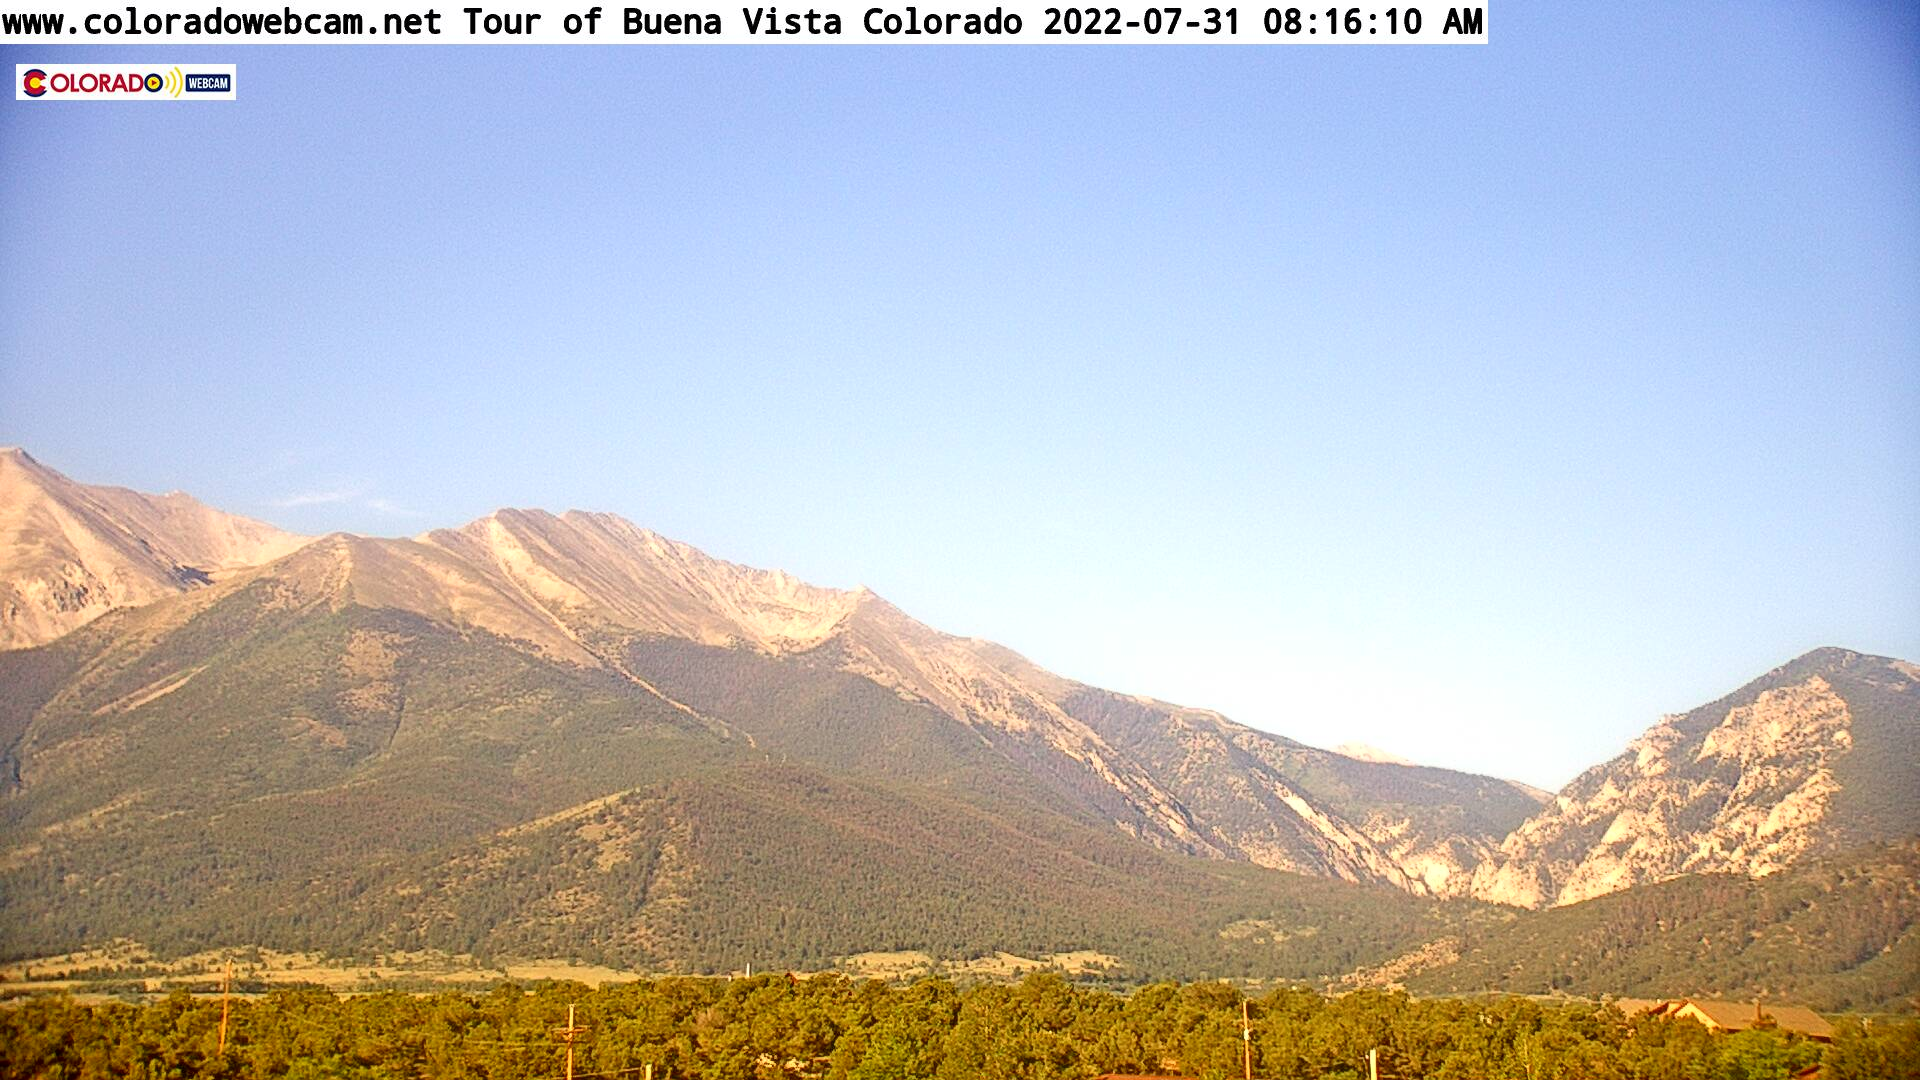 Colorado Web Cam Tour Of Arkansas River Valley From Buena Vista, Colorado